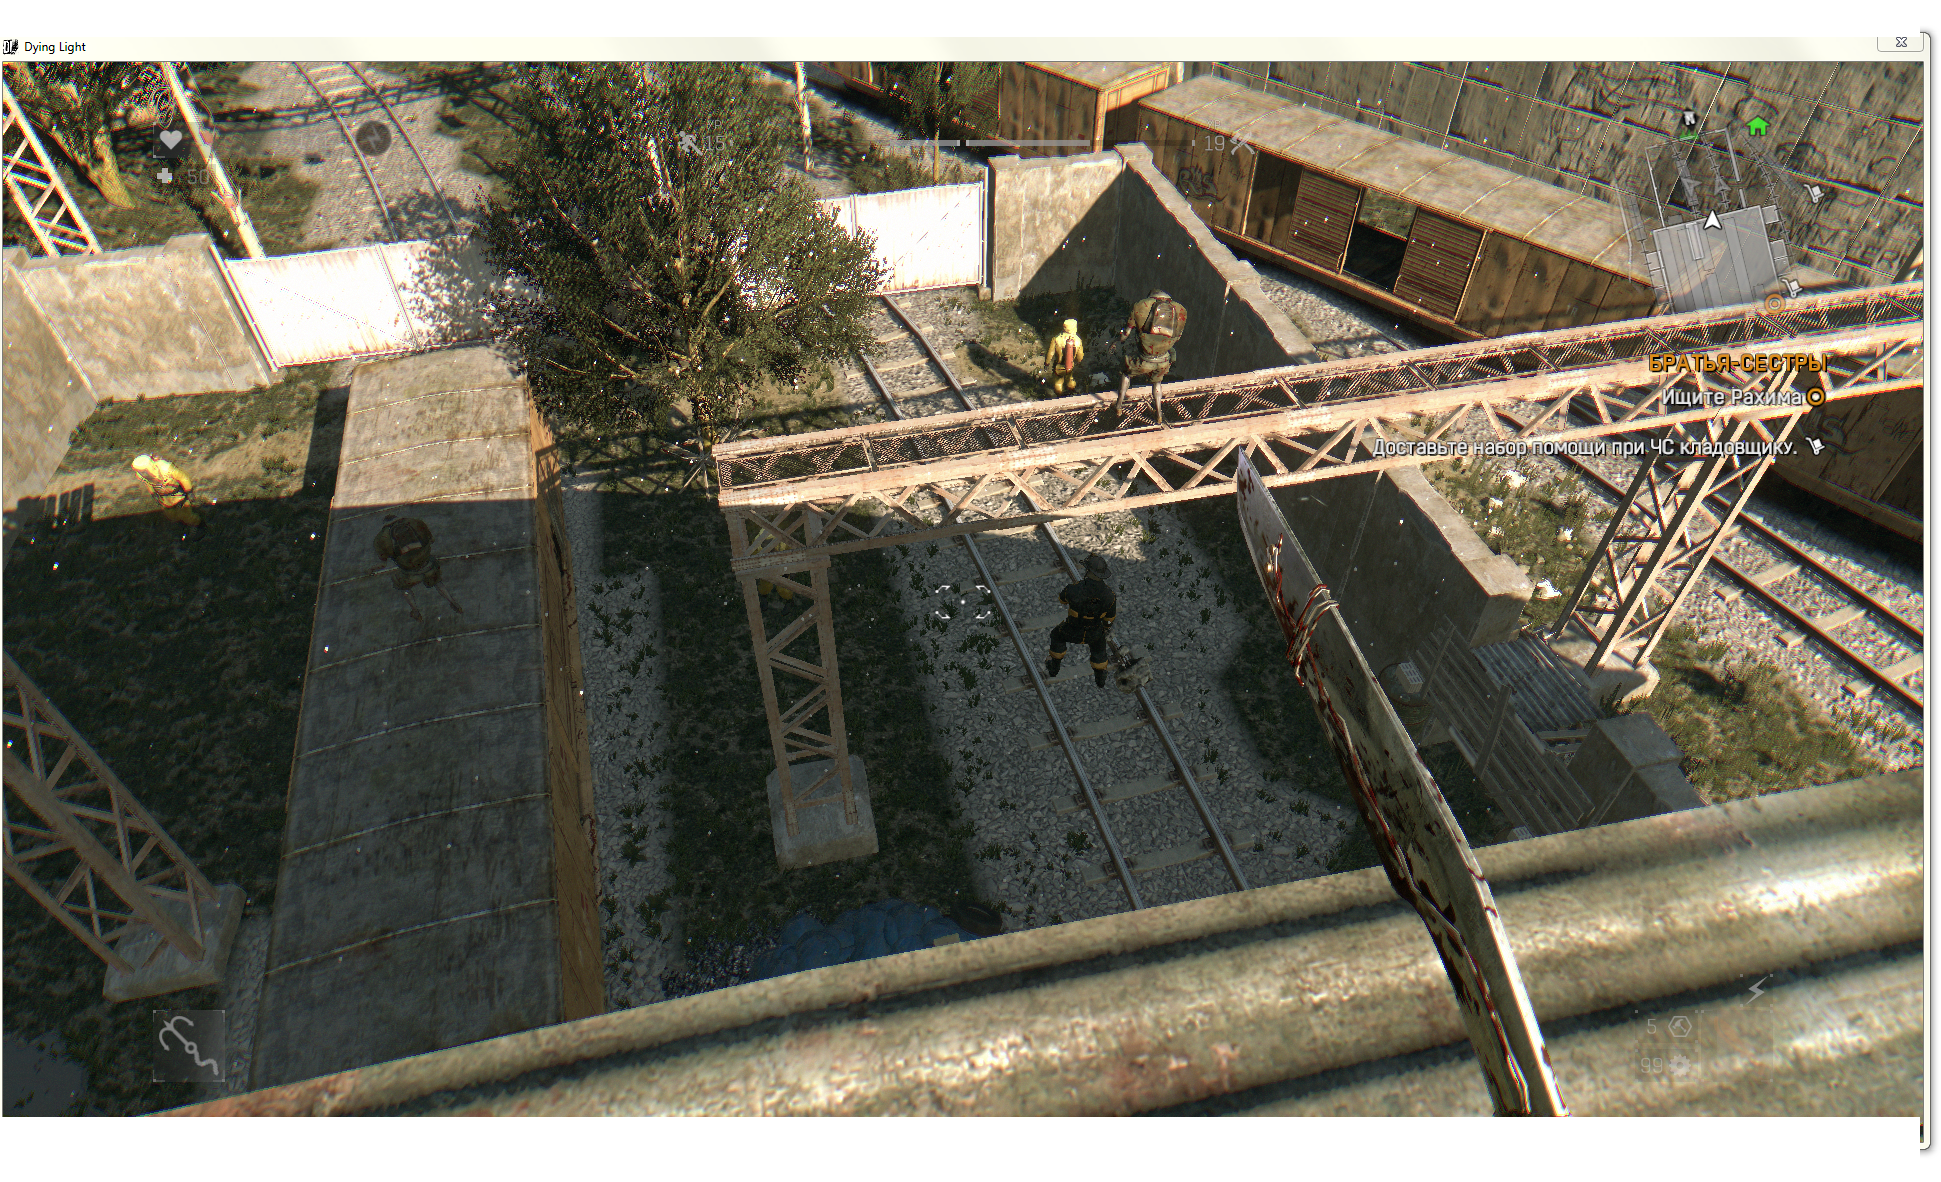 2015-02-04 01-55-25 Dying Light